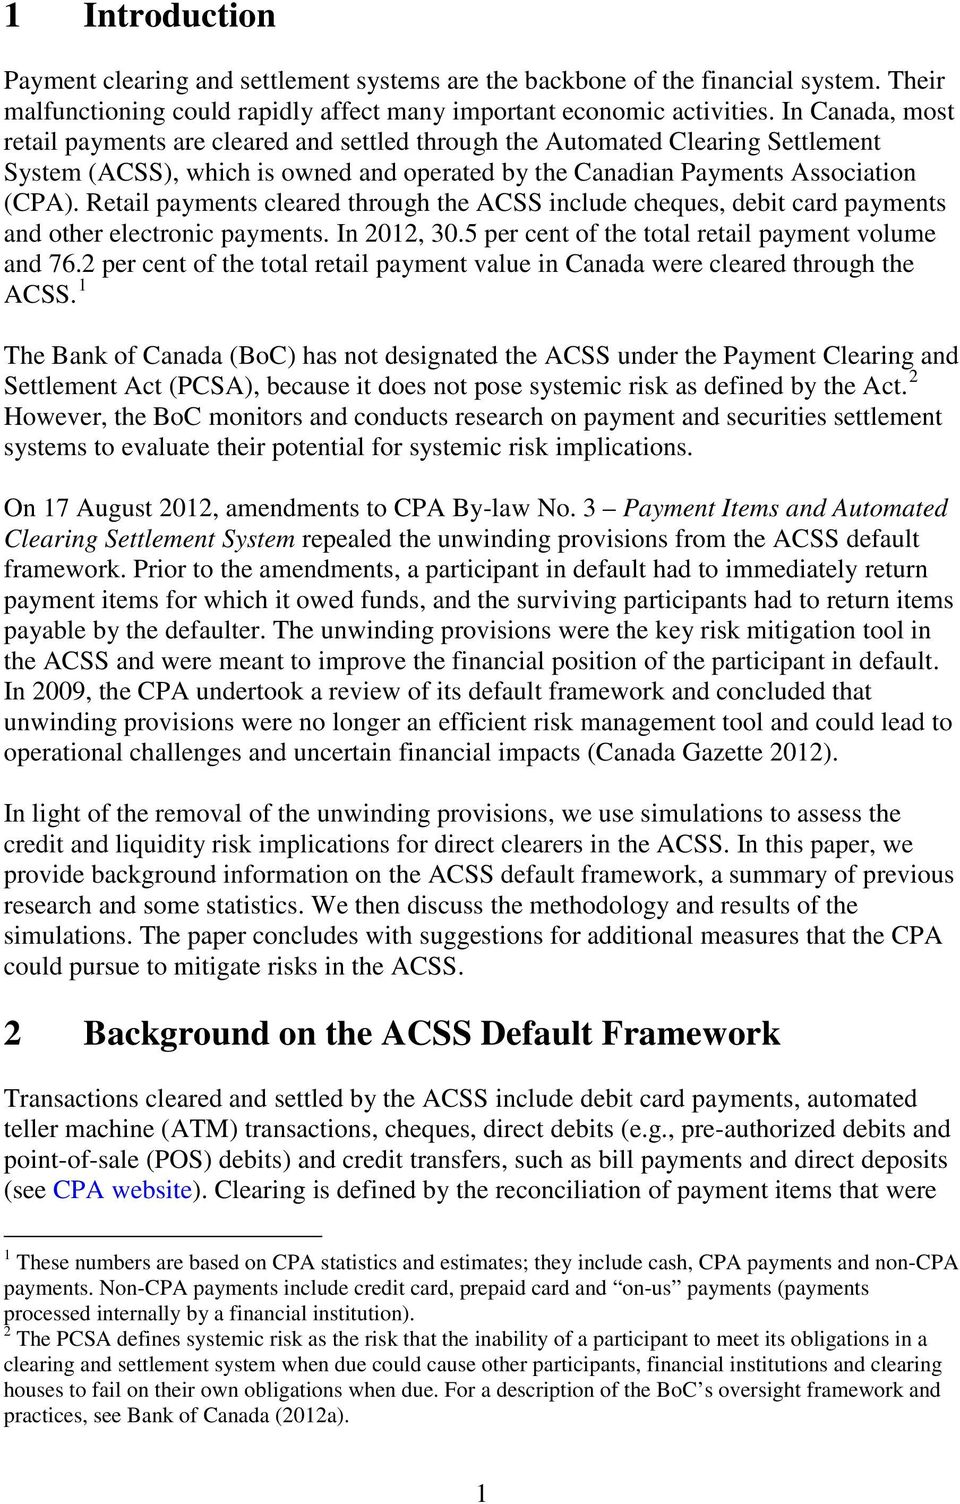 Retail payments cleared through the ACSS include cheques, debit card payments and other electronic payments. In 2012, 30.5 per cent of the total retail payment volume and 76.